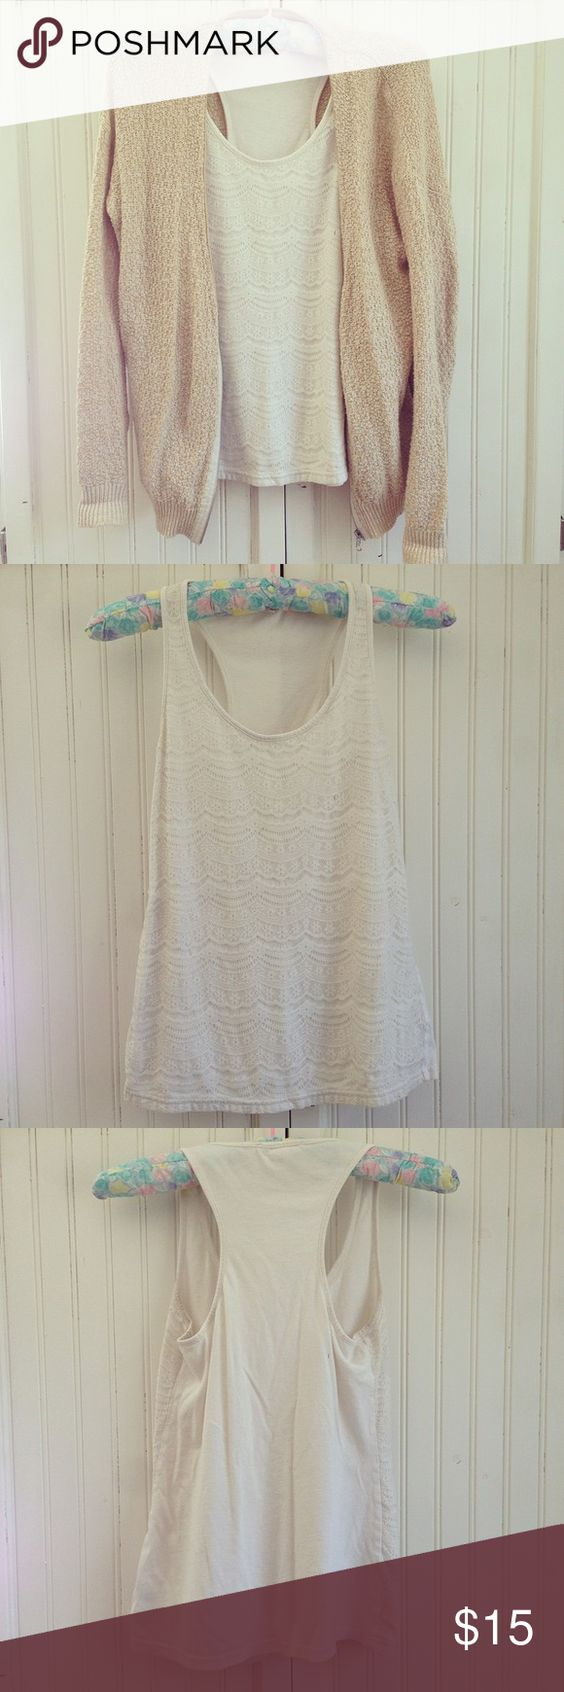 F21 Cream Scalloped Lace Racerback Tank This cream colored racerback tank by Forever 21 features a beautiful scalloped lace layover. This delicate print looks girly & gorgeous in any outfit! The armpit area is slightly stained on both sides, but it's hardly noticeable. Otherwise no flaws. Forever 21 Tops Tank Tops